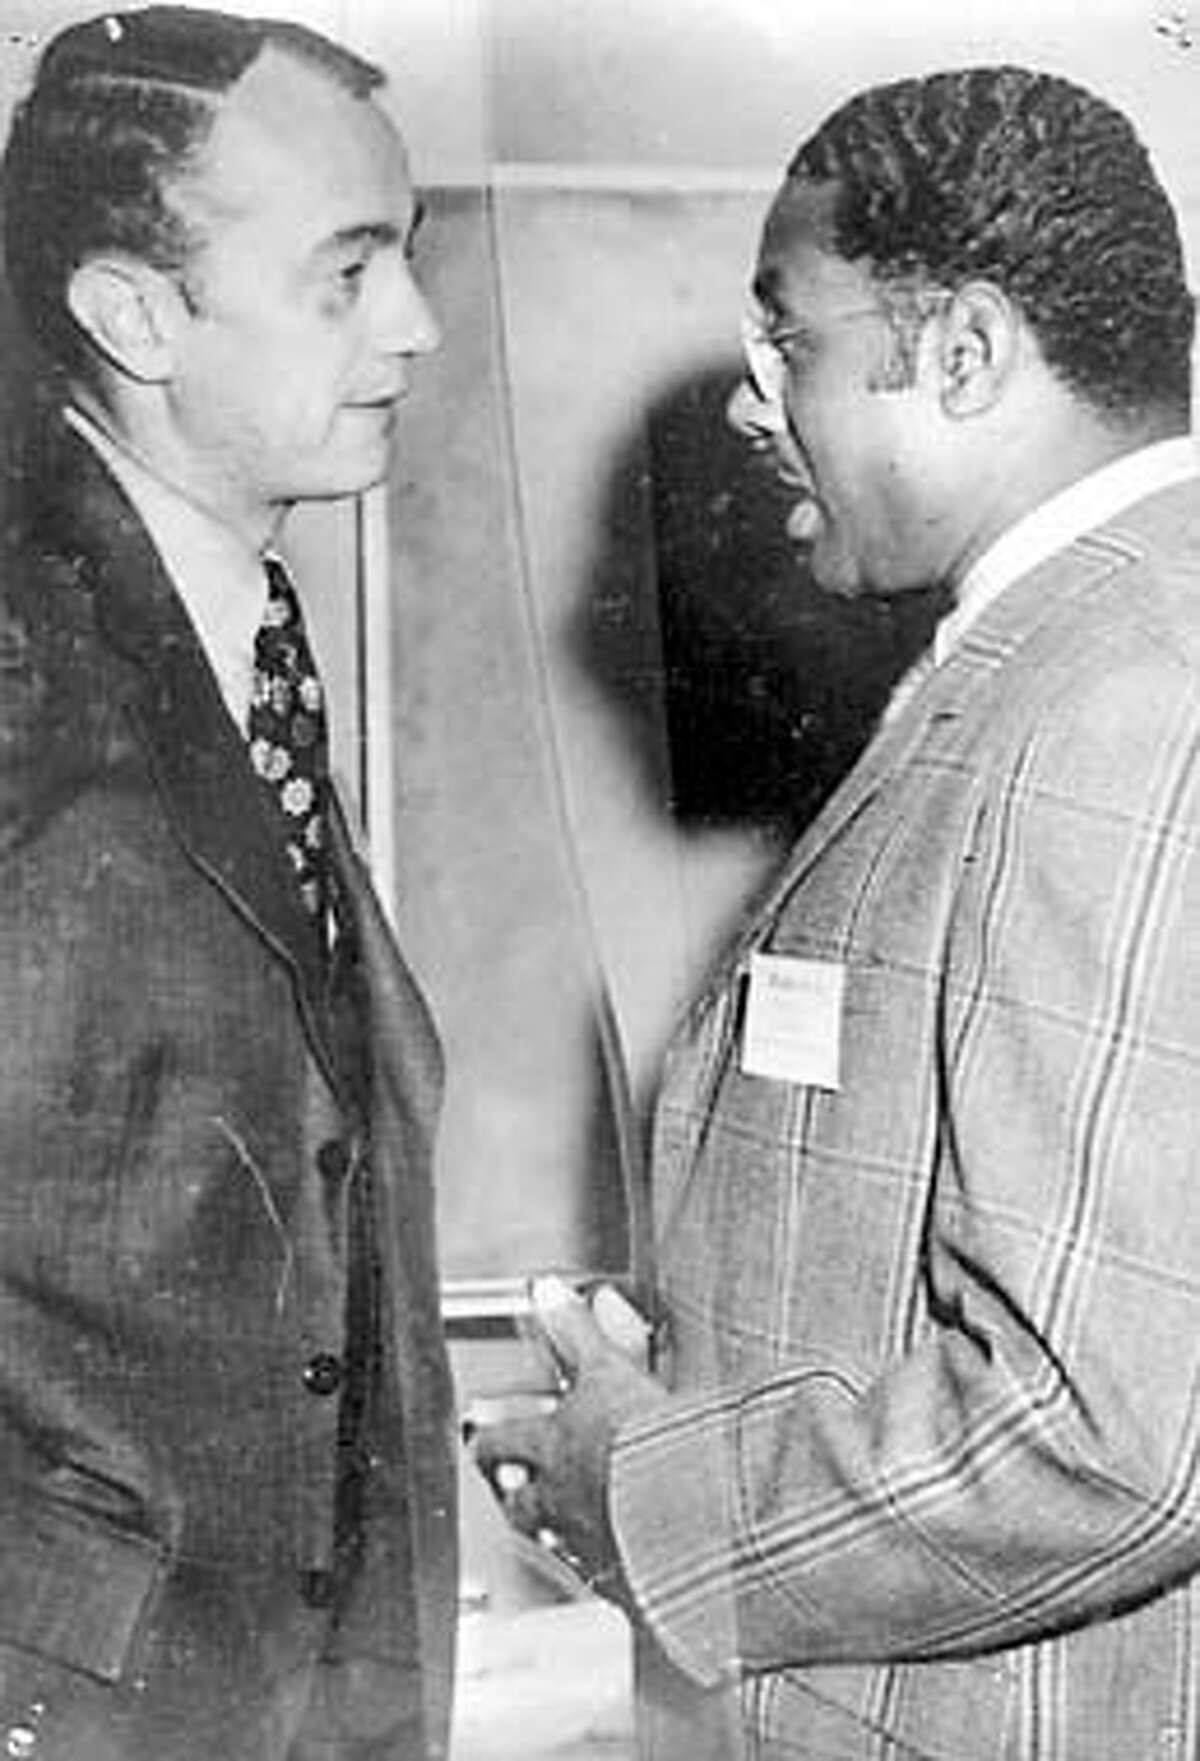 Robert Blackburn, former Oakland Deputy school superintendent, left, talks to the late Marcus Foster in 1972. Blackburn was wounded and Foster, the then school superintendent was killed by the SLA in 1973. photo courtesy of Robert Blackburn.